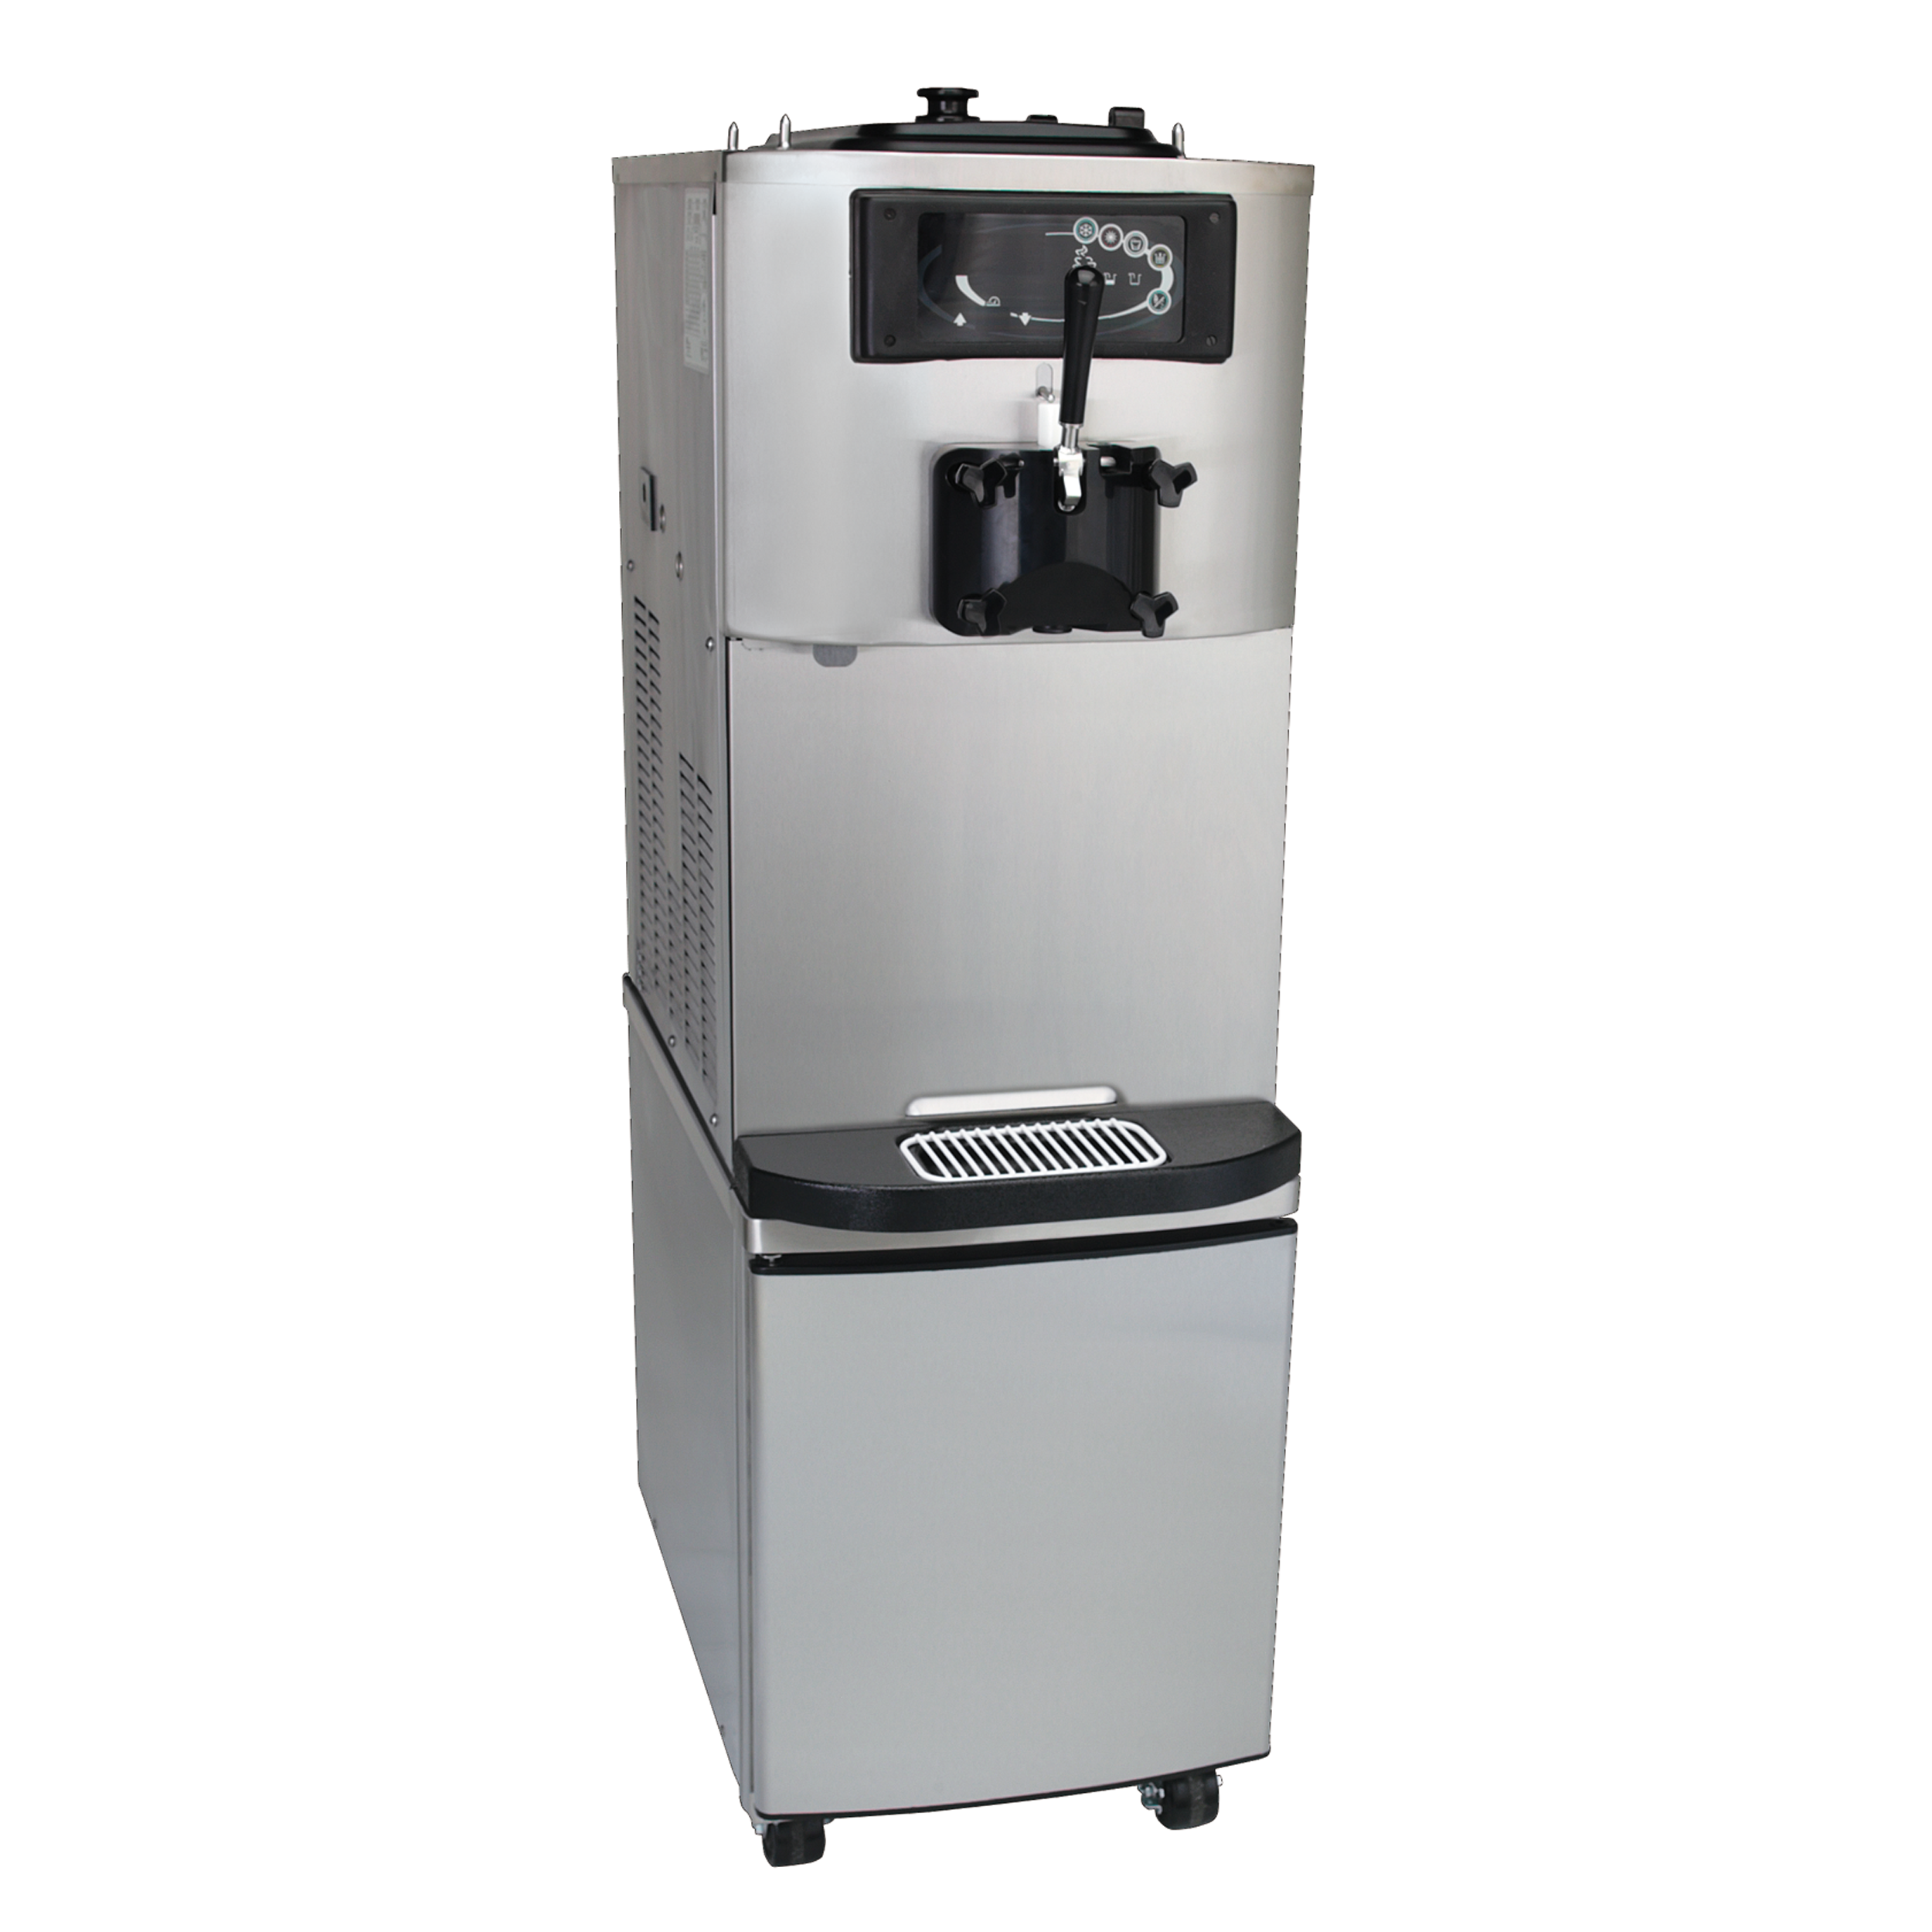 Model C708 with cart   Soft Serve Freezer  Offer all the popular soft serve variations from low to nonfat ice creams or yogurt.  KEY SPECIFICATIONS:   Finished Products : Soft Serve   Installation : Floor    Number of Flavors : 1   Freezing Cylinder QTY : 1   Freezing Cylinder Size (qt/l) : 3.4/3.2